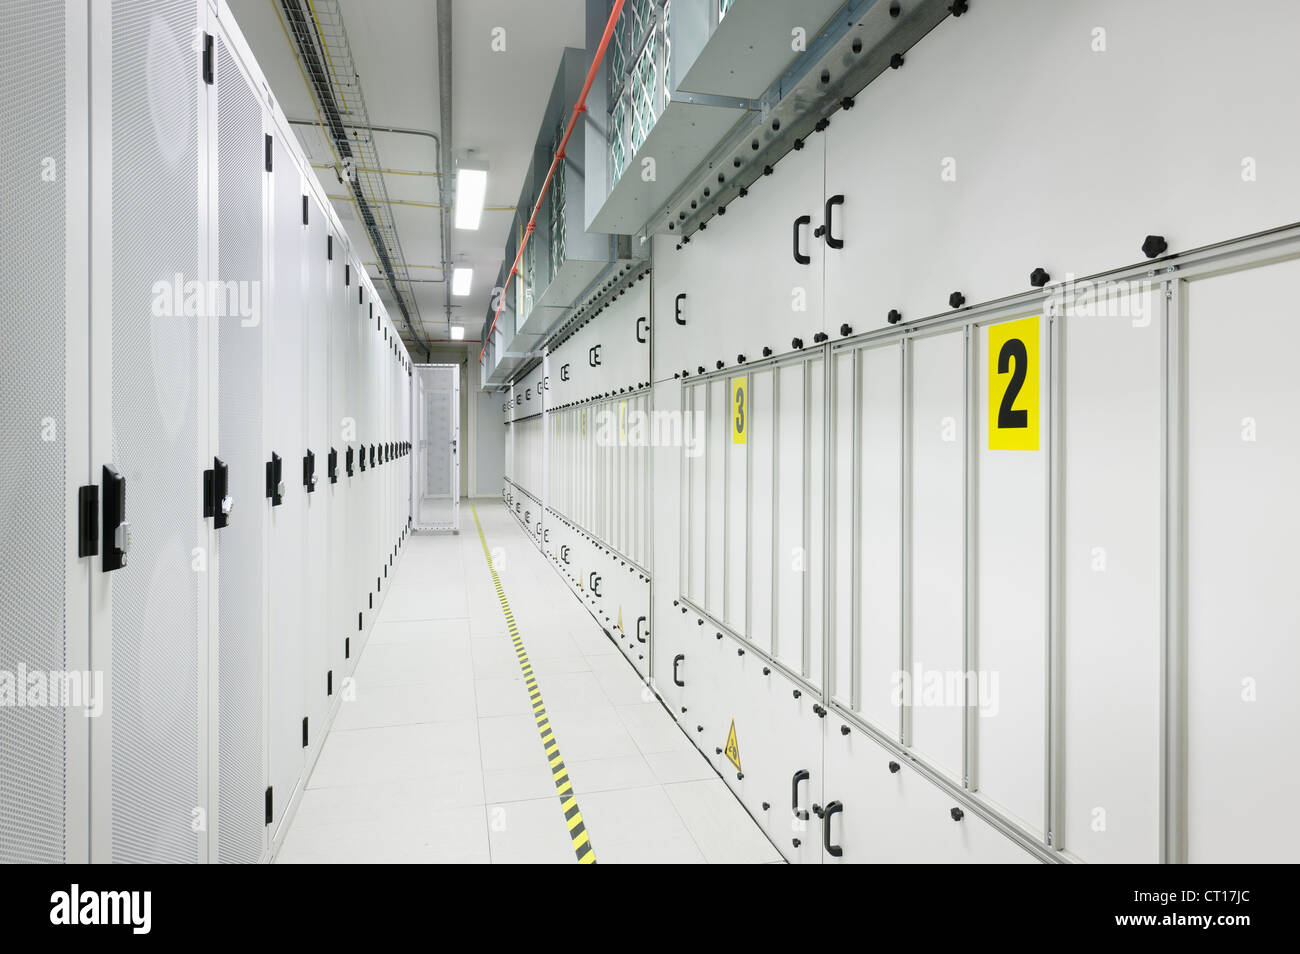 Marked hallway in server room - Stock Image